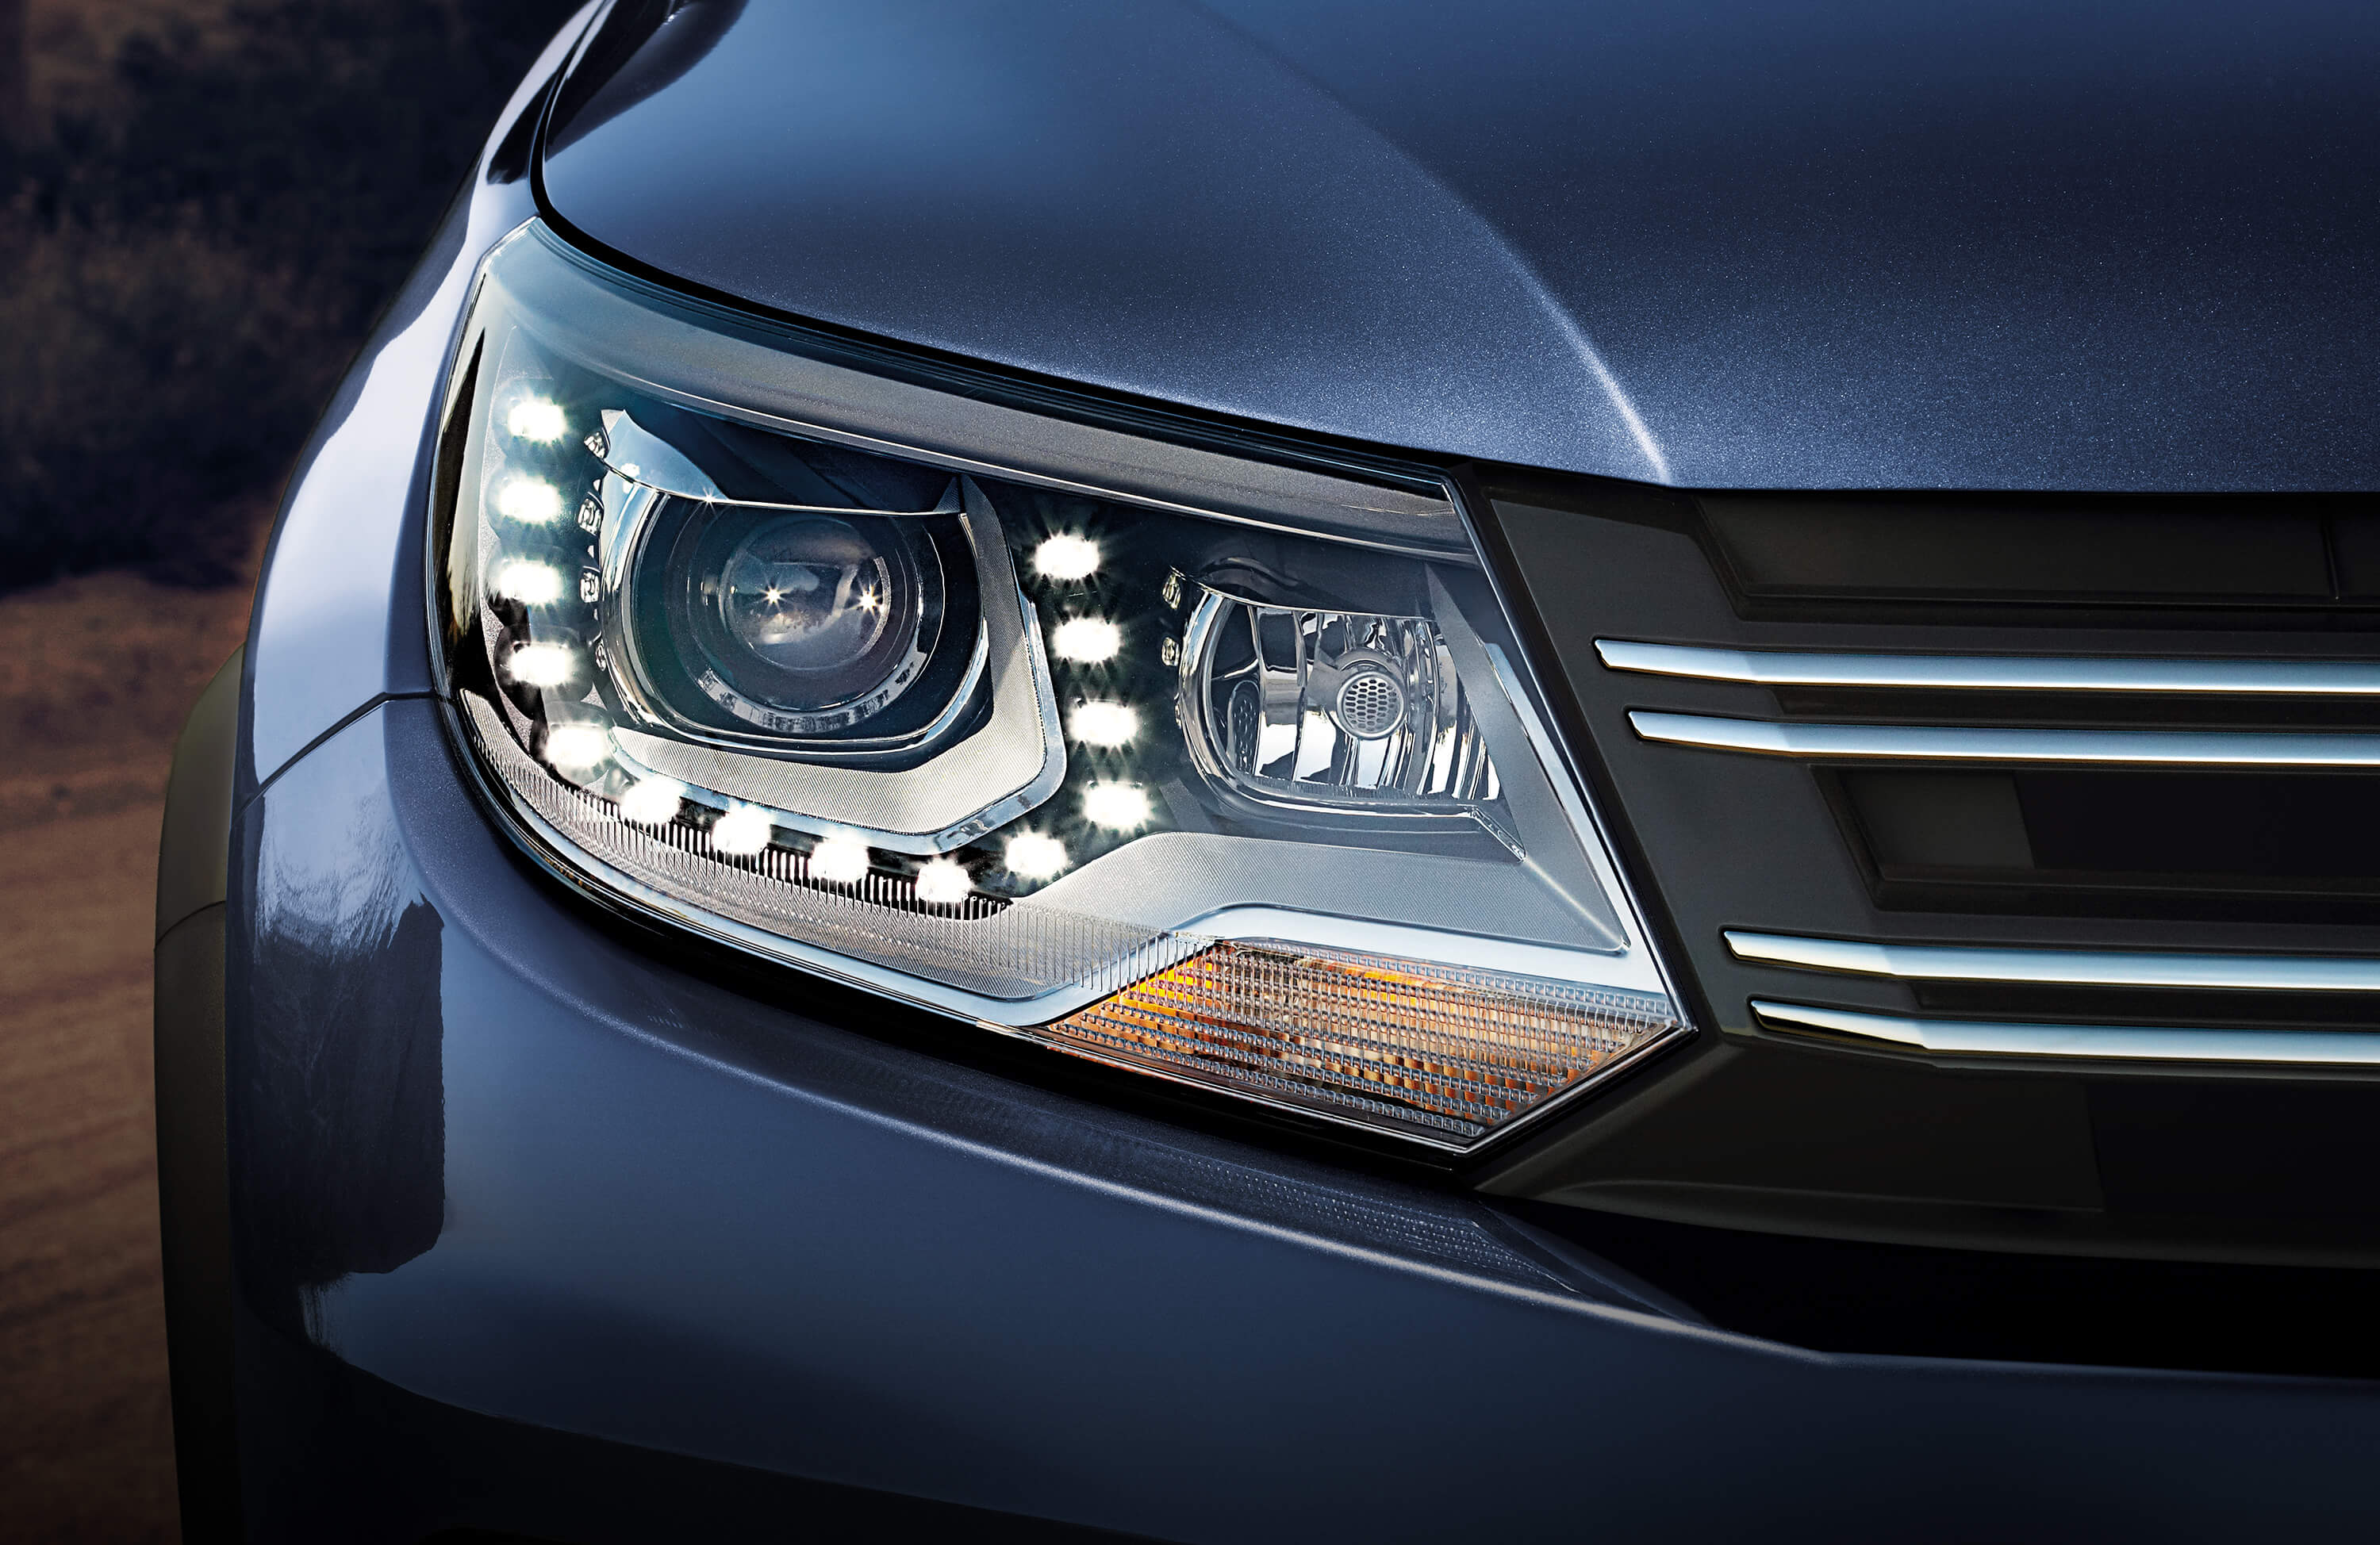 2016 Tiguan Front Bi-Xenon Headlights and LED Daytime Running Lights